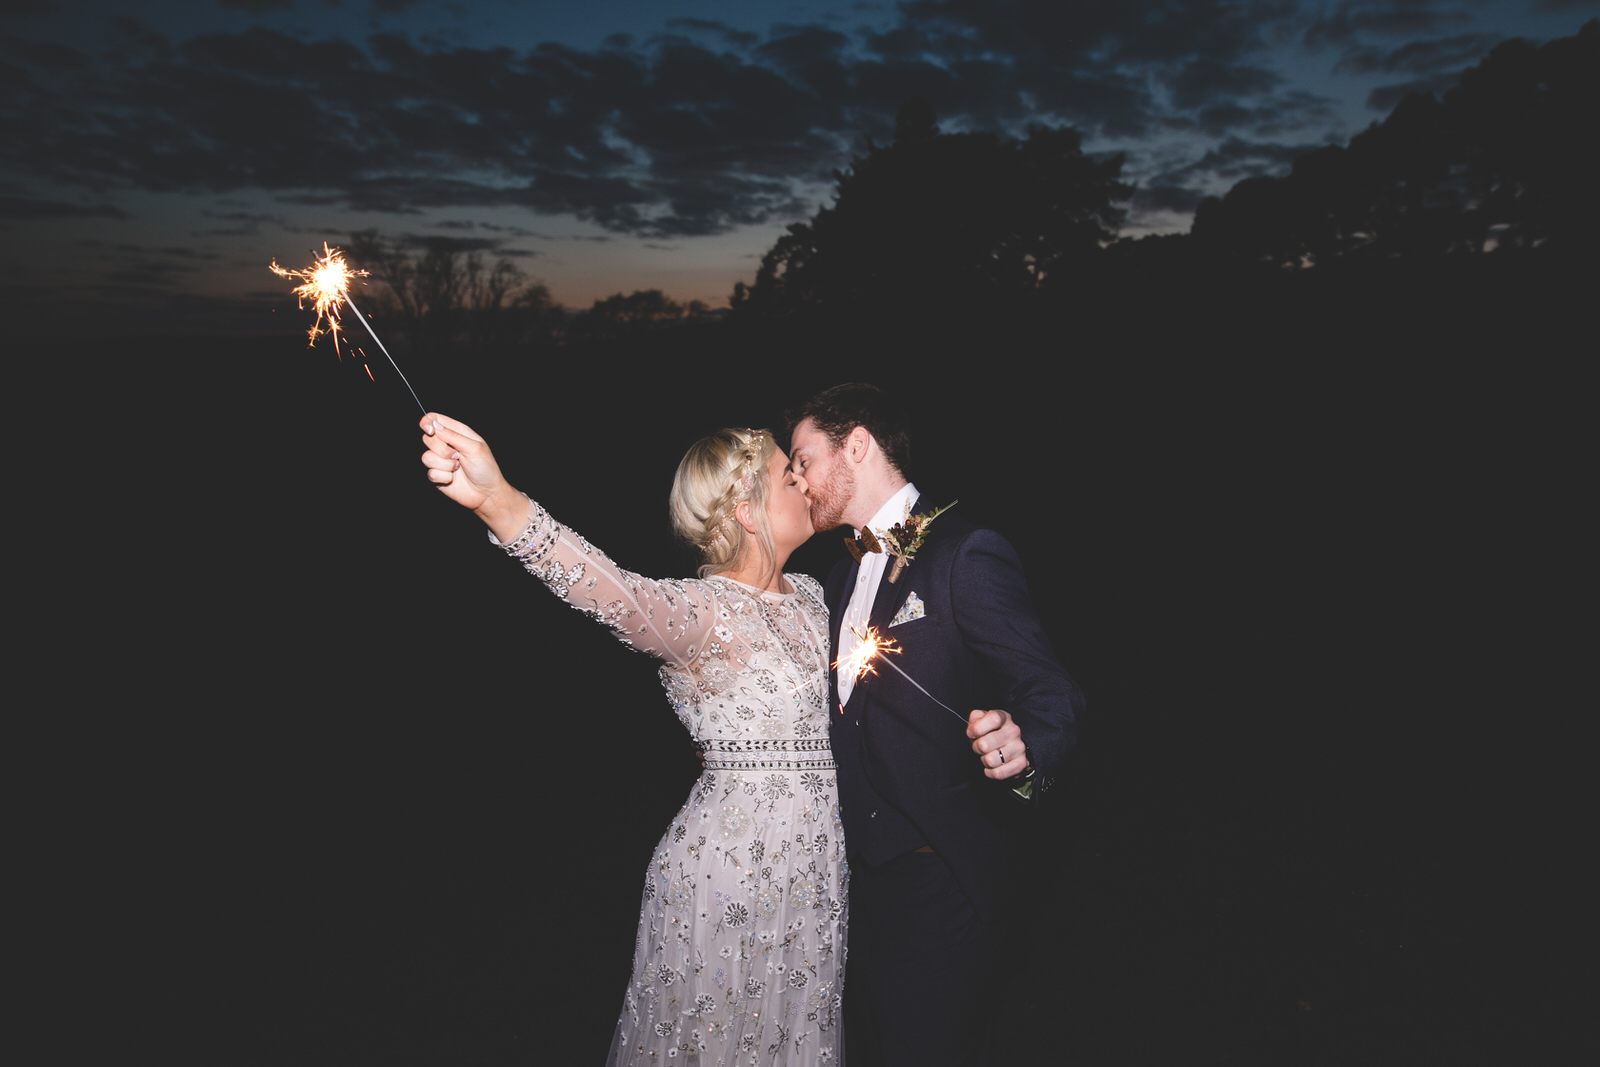 Wedding Sparkler shots at Kippure Estate wicklow